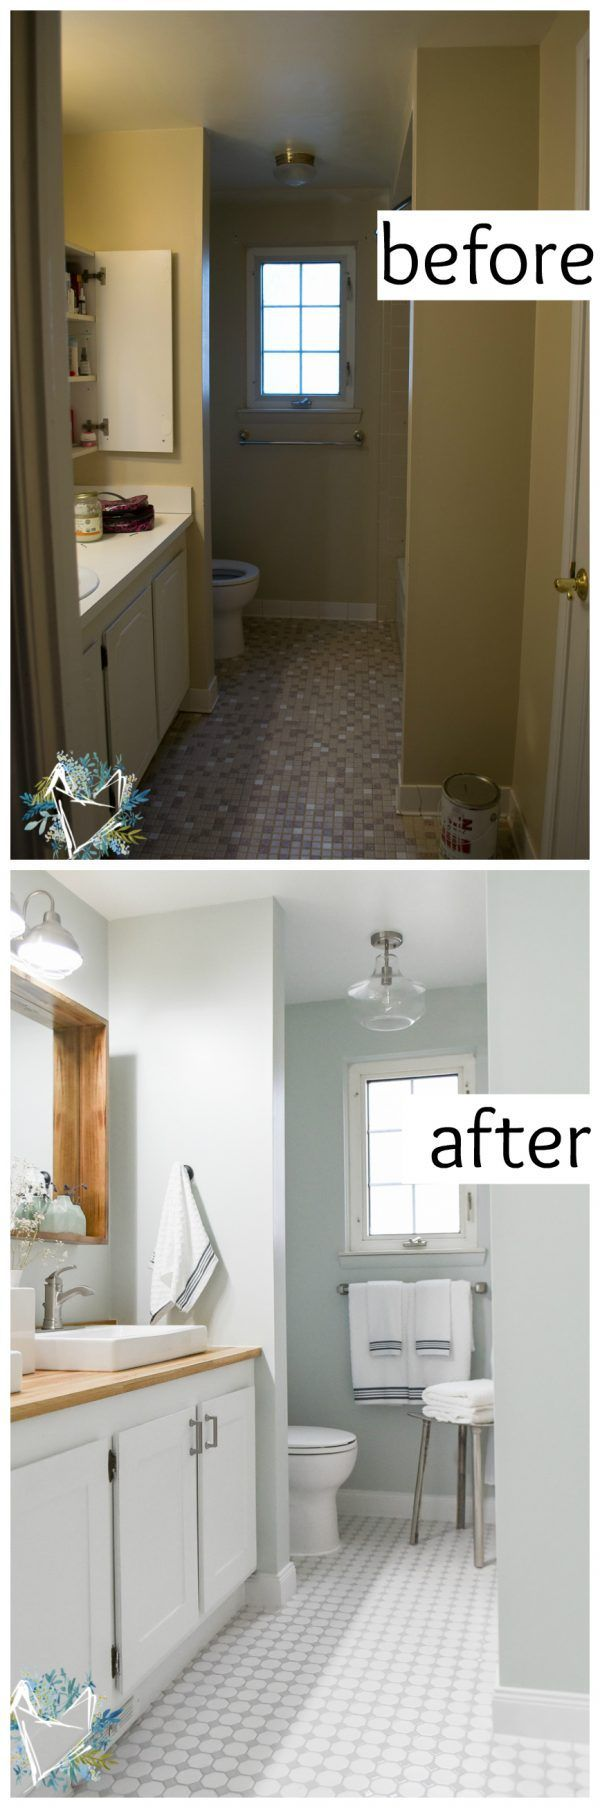 inexpensive bathroom remodel ideas. 13+ Best Bathroom Remodel Ideas \u0026 Makeovers Design | Budget Remodel, Remodeling Contractors And Modern Farmhouse Inexpensive P